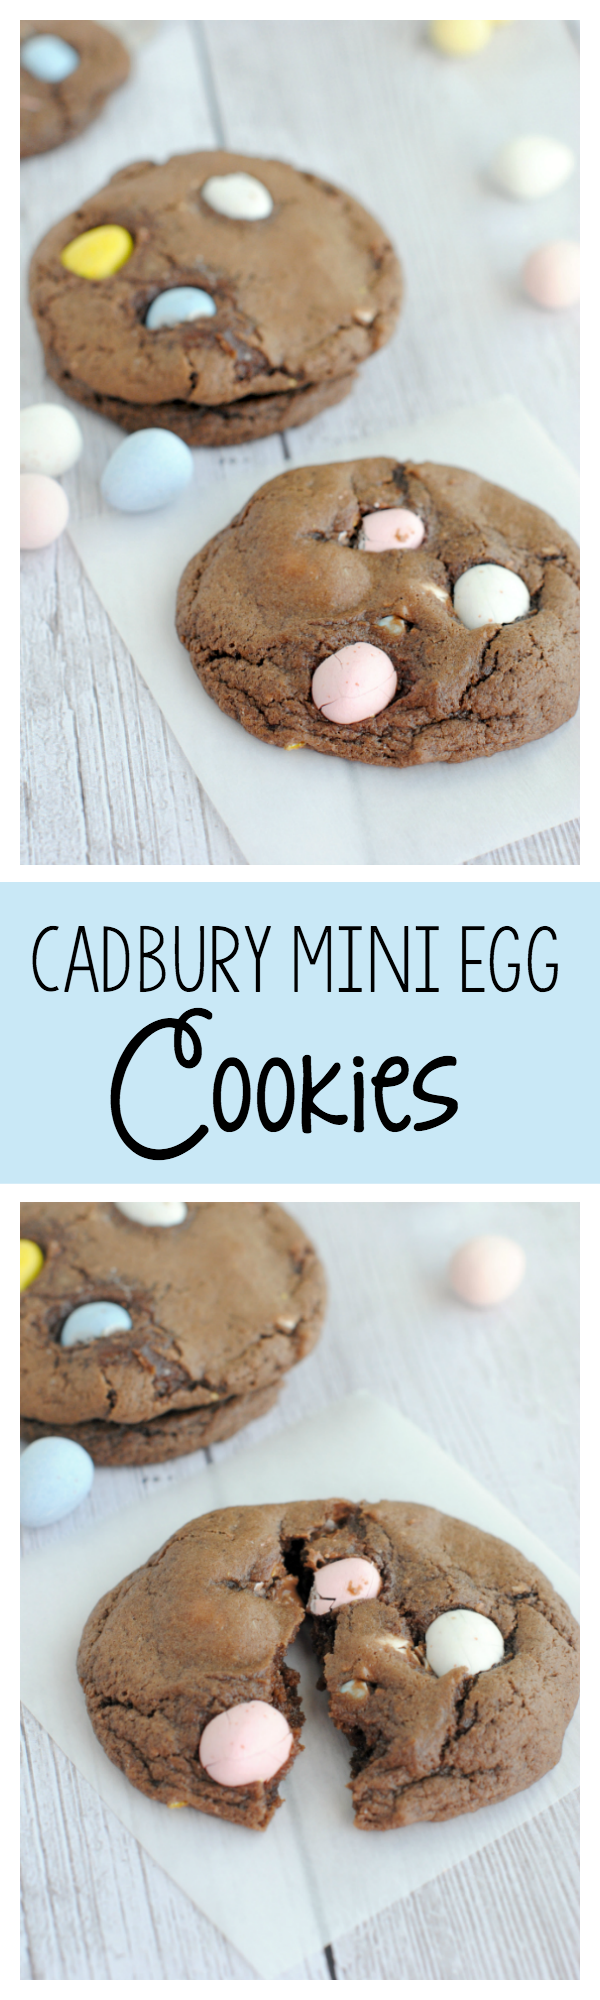 Easy and Amazing Cadbury Mini Egg Cookies Recipe